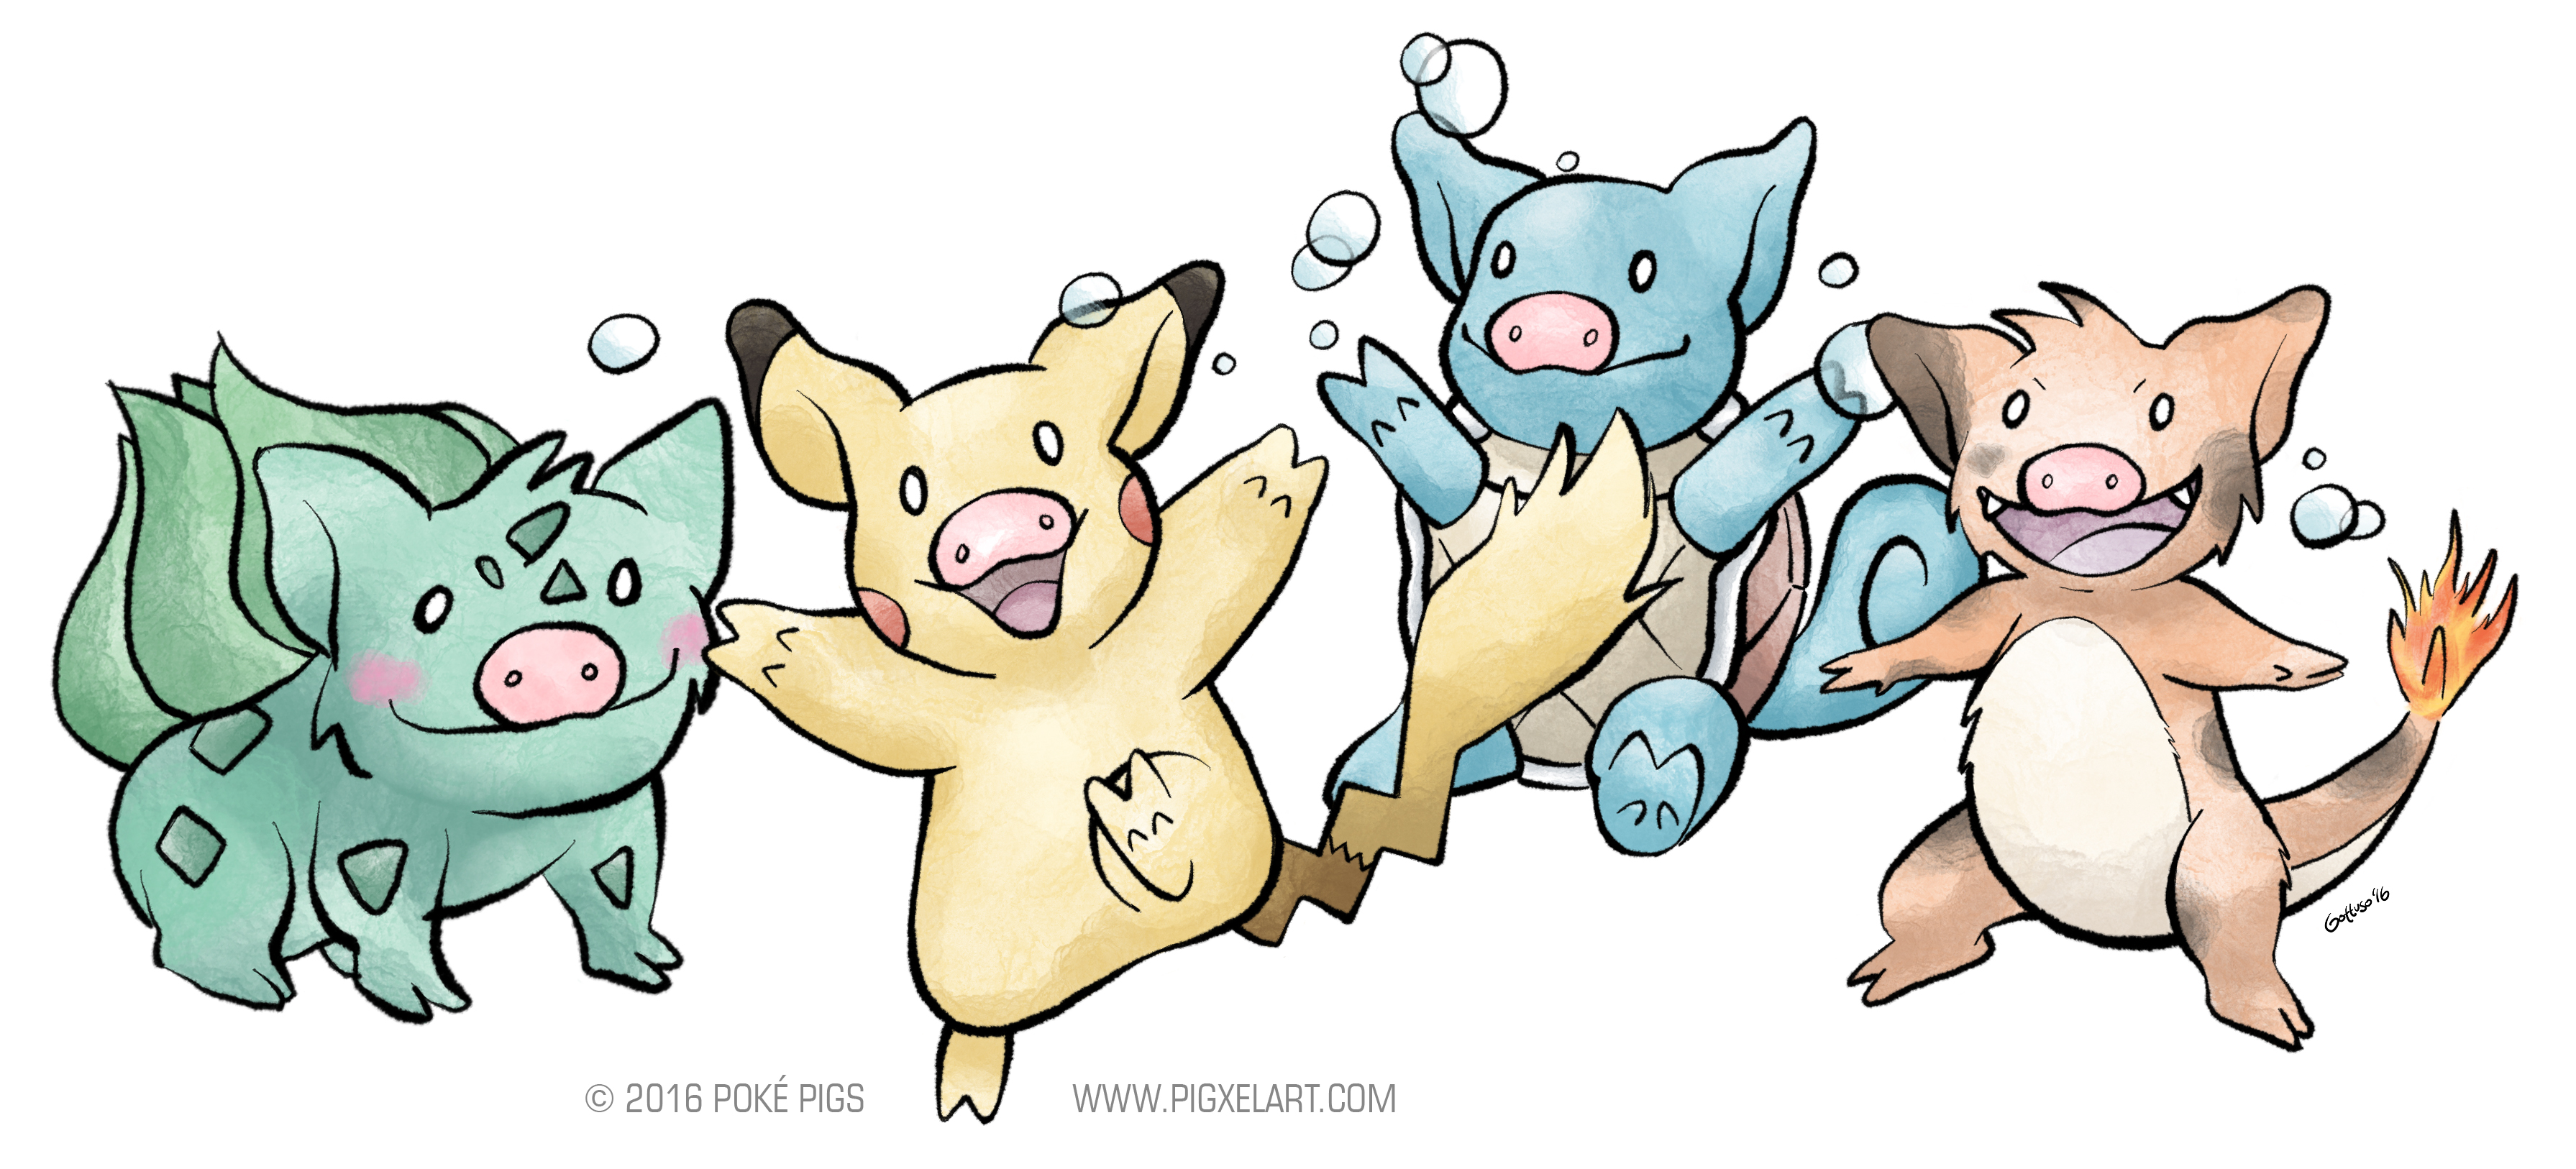 Pokemon Pigs Starters Pikachu Bulbasaur Squirtle Charmander